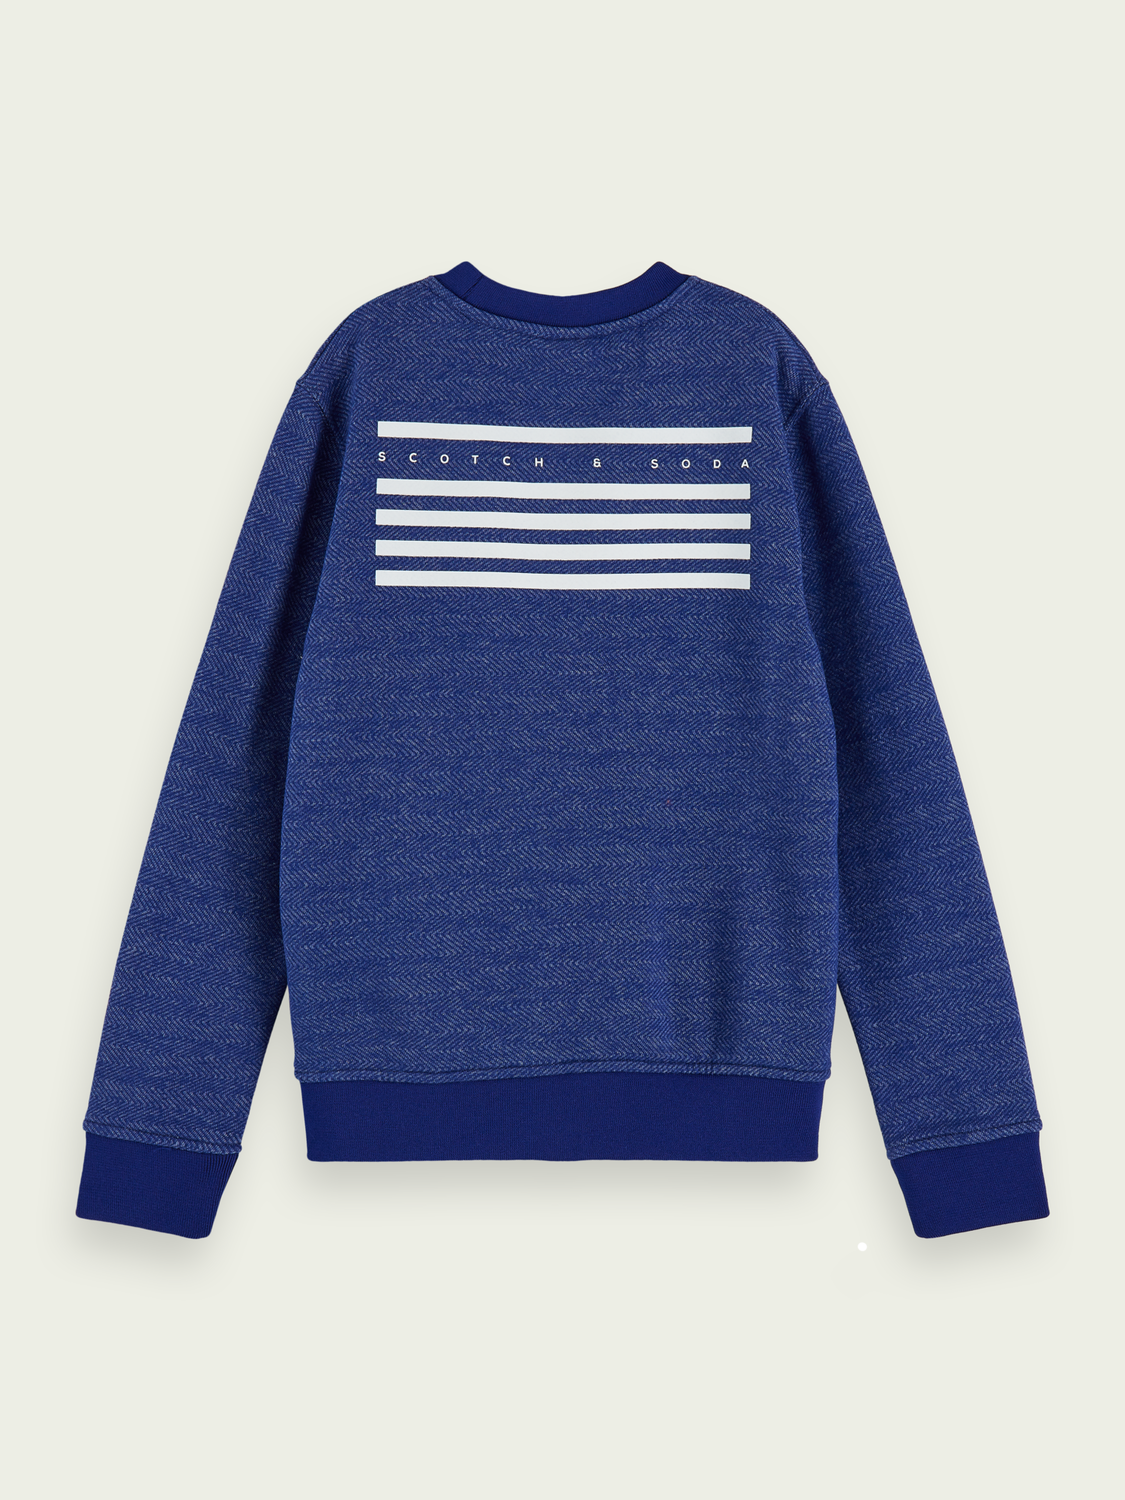 Boys Cotton-blend every day long sleeve sweatshirt